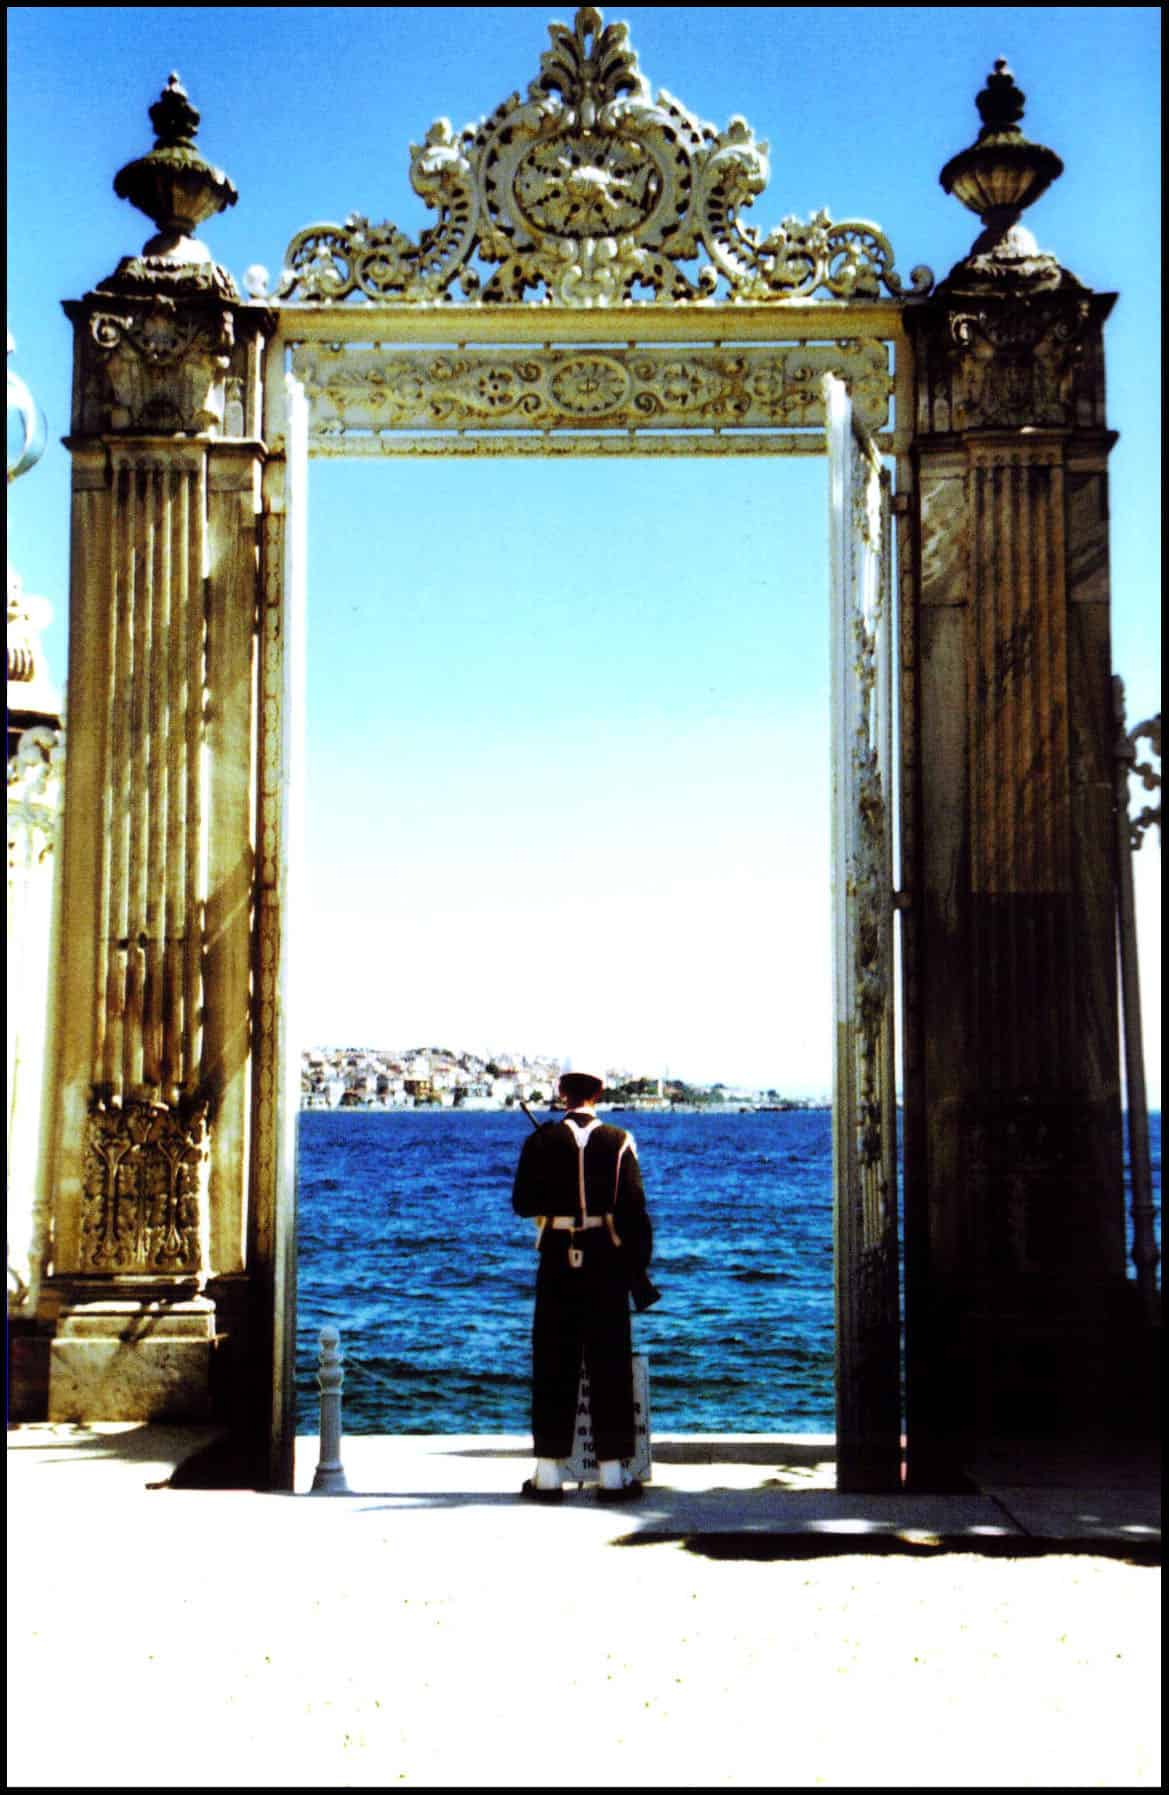 2009: Dolmabahce Palace (my istanbul past)